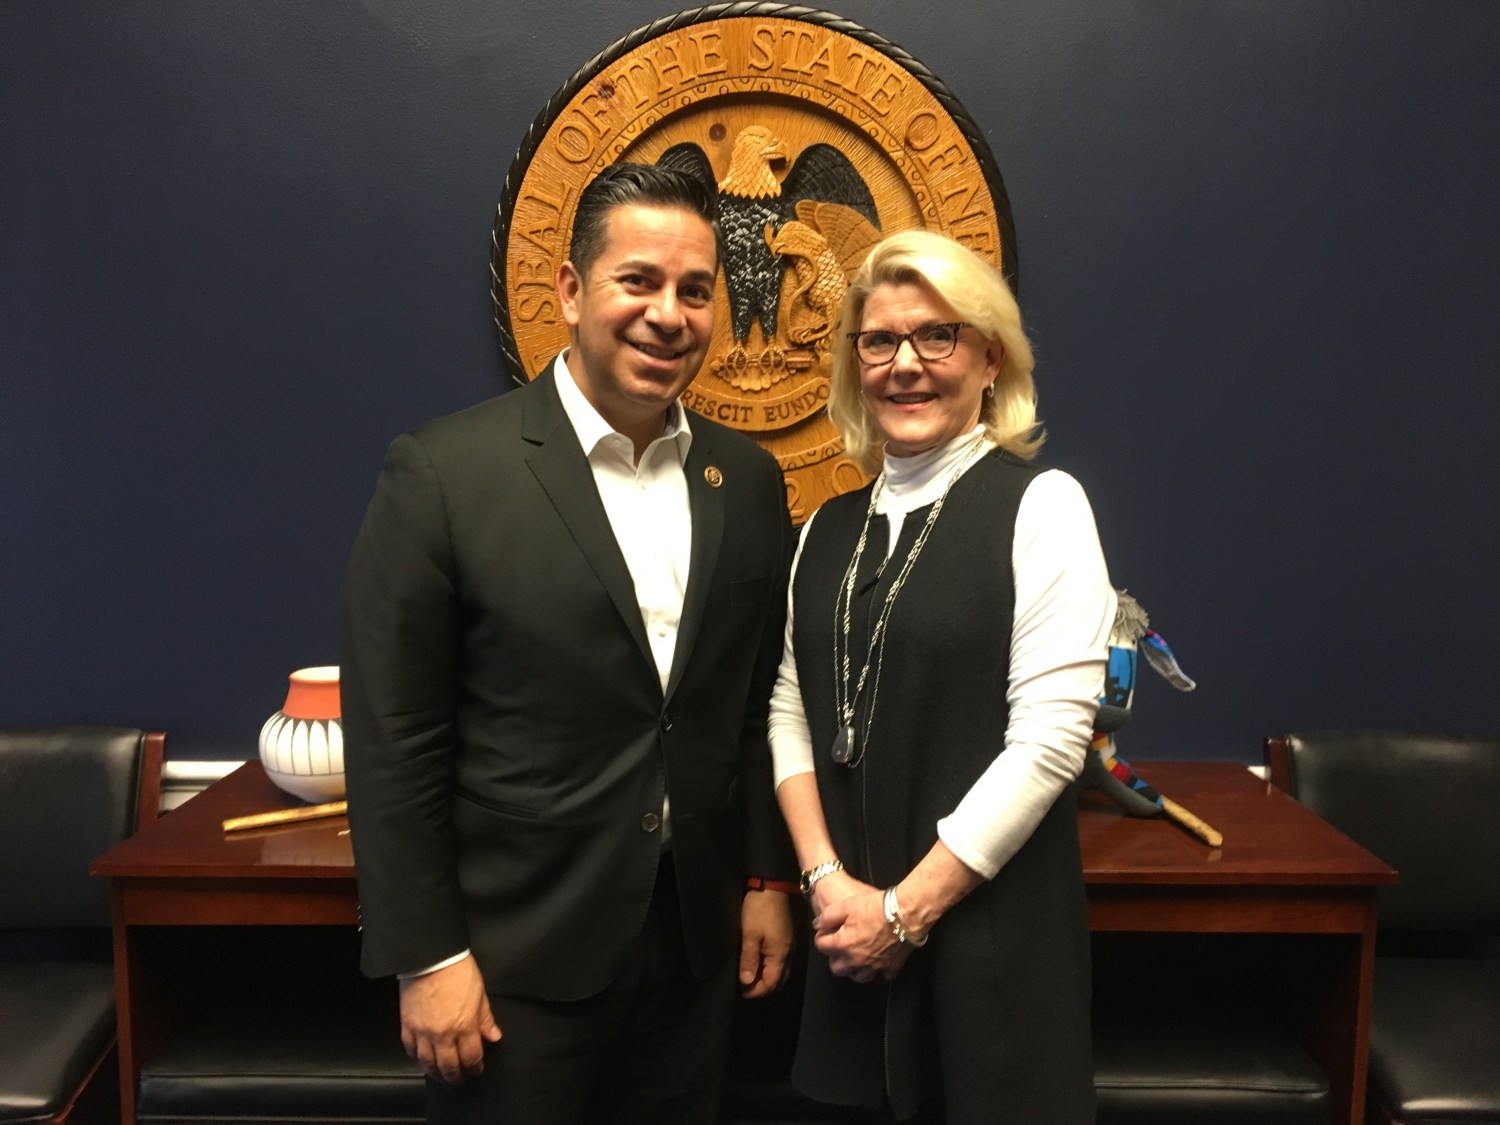 SFGC president meeting with Congressman Lujan